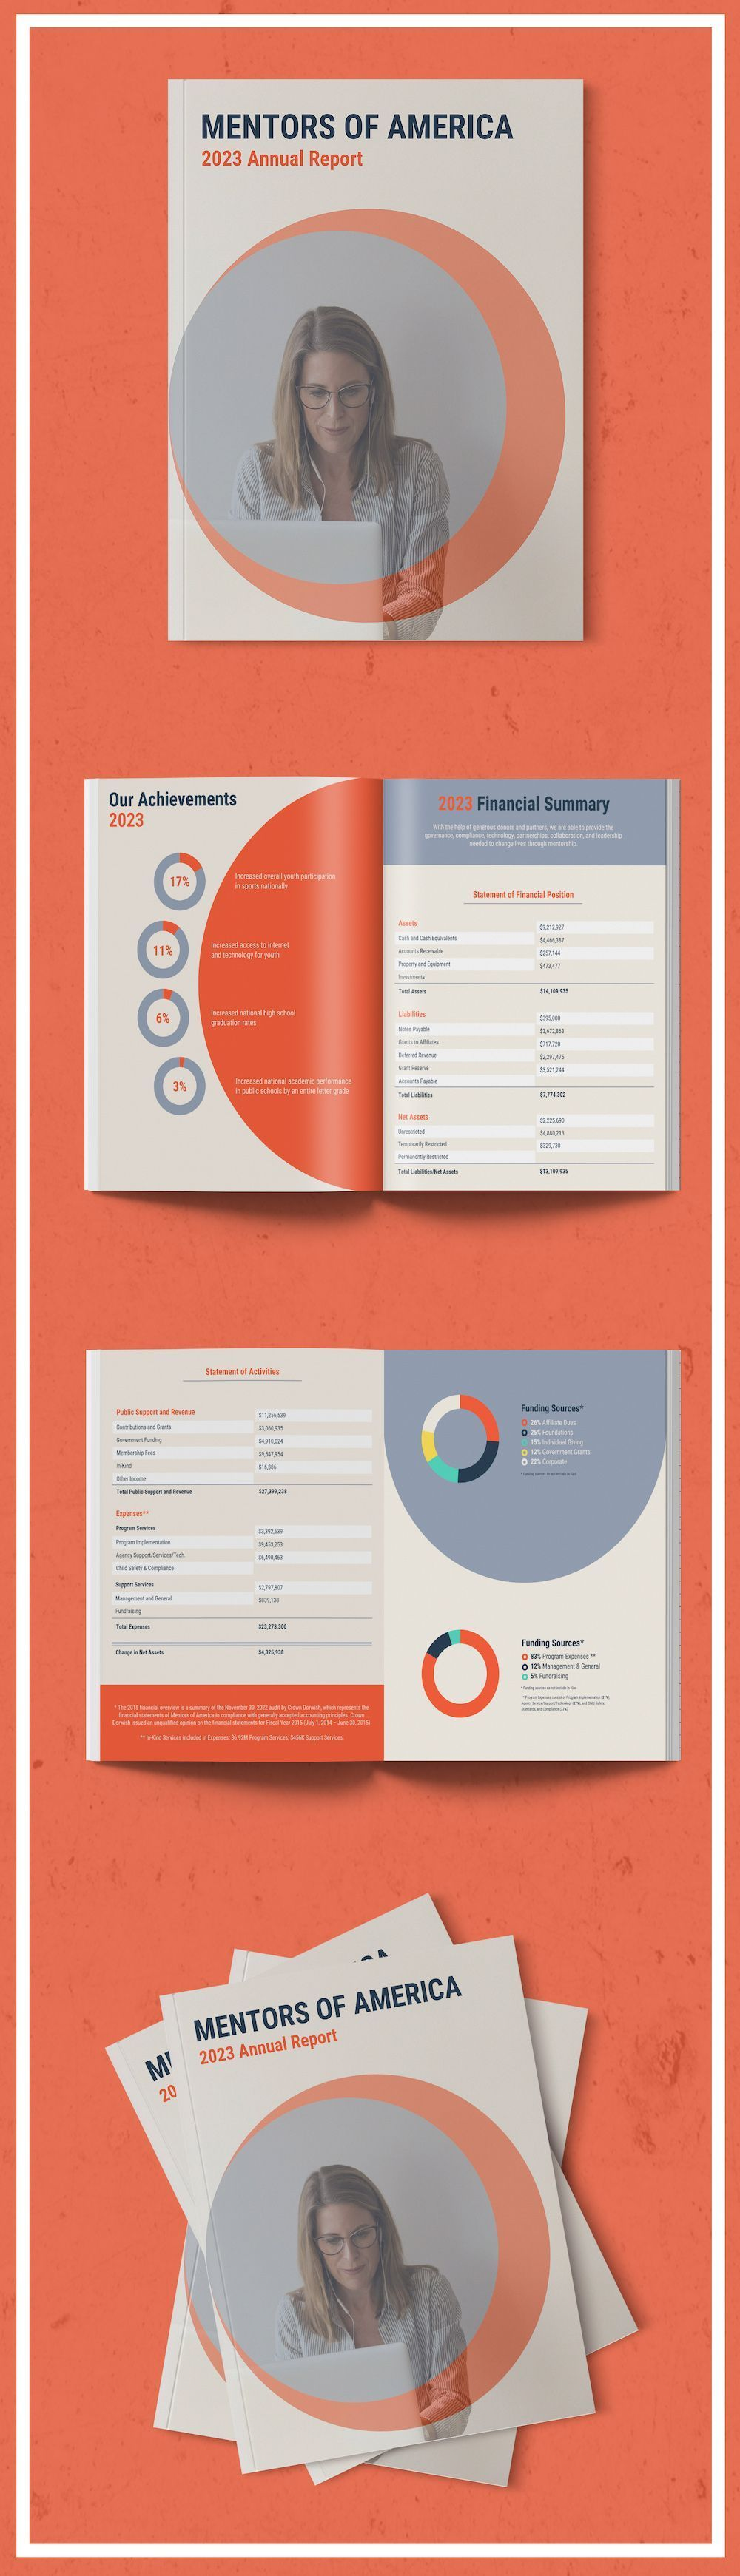 Nonprofit Annual Report Template Template #annualreports Nonprofit Annual Report Template - Measure How Well Your Organization Is Doing By Customizing This Nonprofit Annual Report Template! // Orange Modern Nonprofit Annual Report Template7 #annualreports Nonprofit Annual Report Template Template #annualreports Nonprofit Annual Report Template - Measure How Well Your Organization Is Doing By Customizing This Nonprofit Annual Report Template! // Orange Modern Nonprofit Annual Report Template7 #annualreports